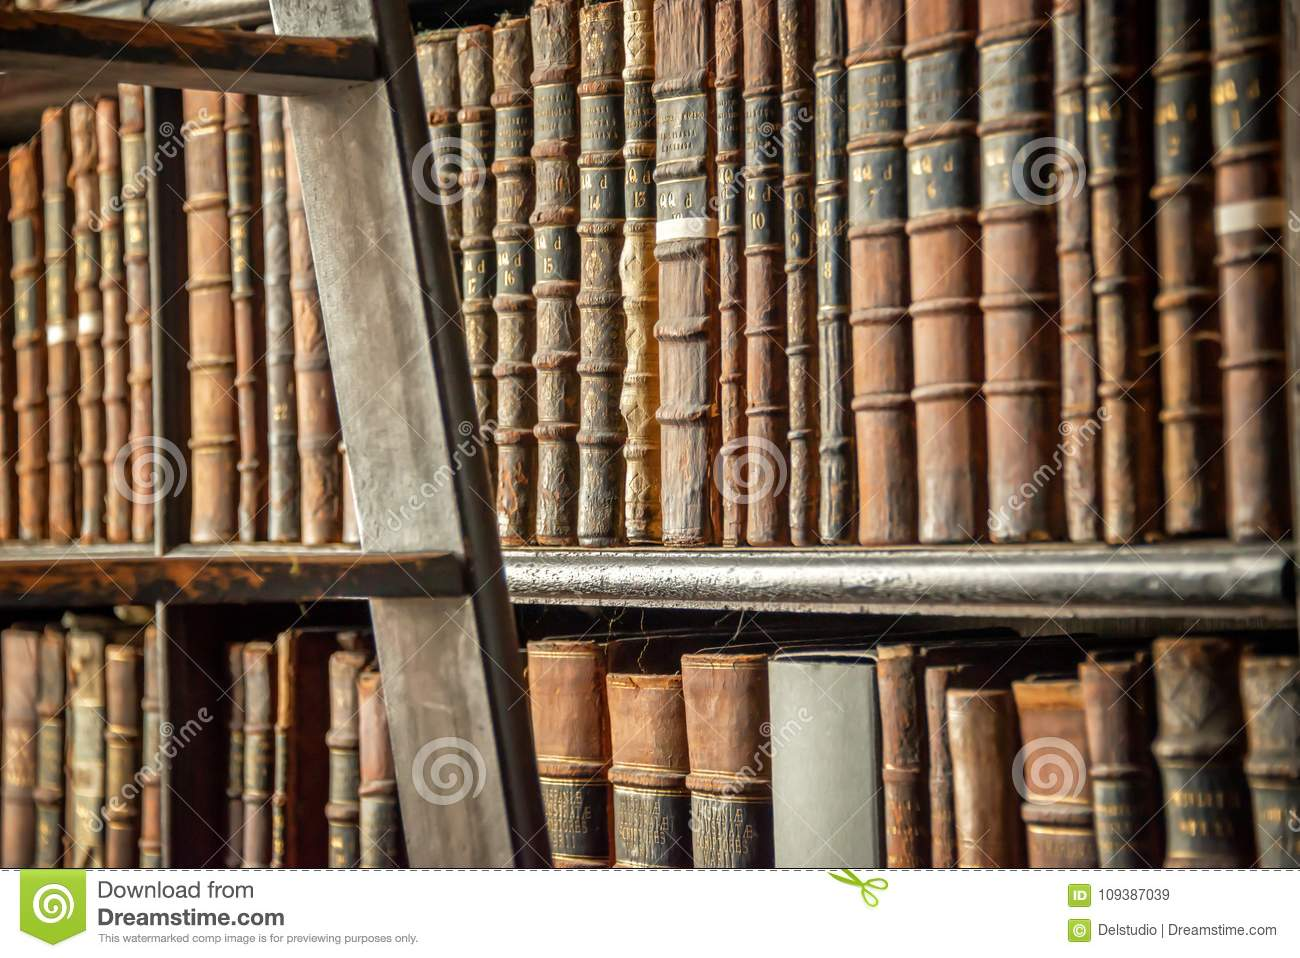 Old Vintage Books On Wooden Bookshelf And Ladder In A Library Download Preview